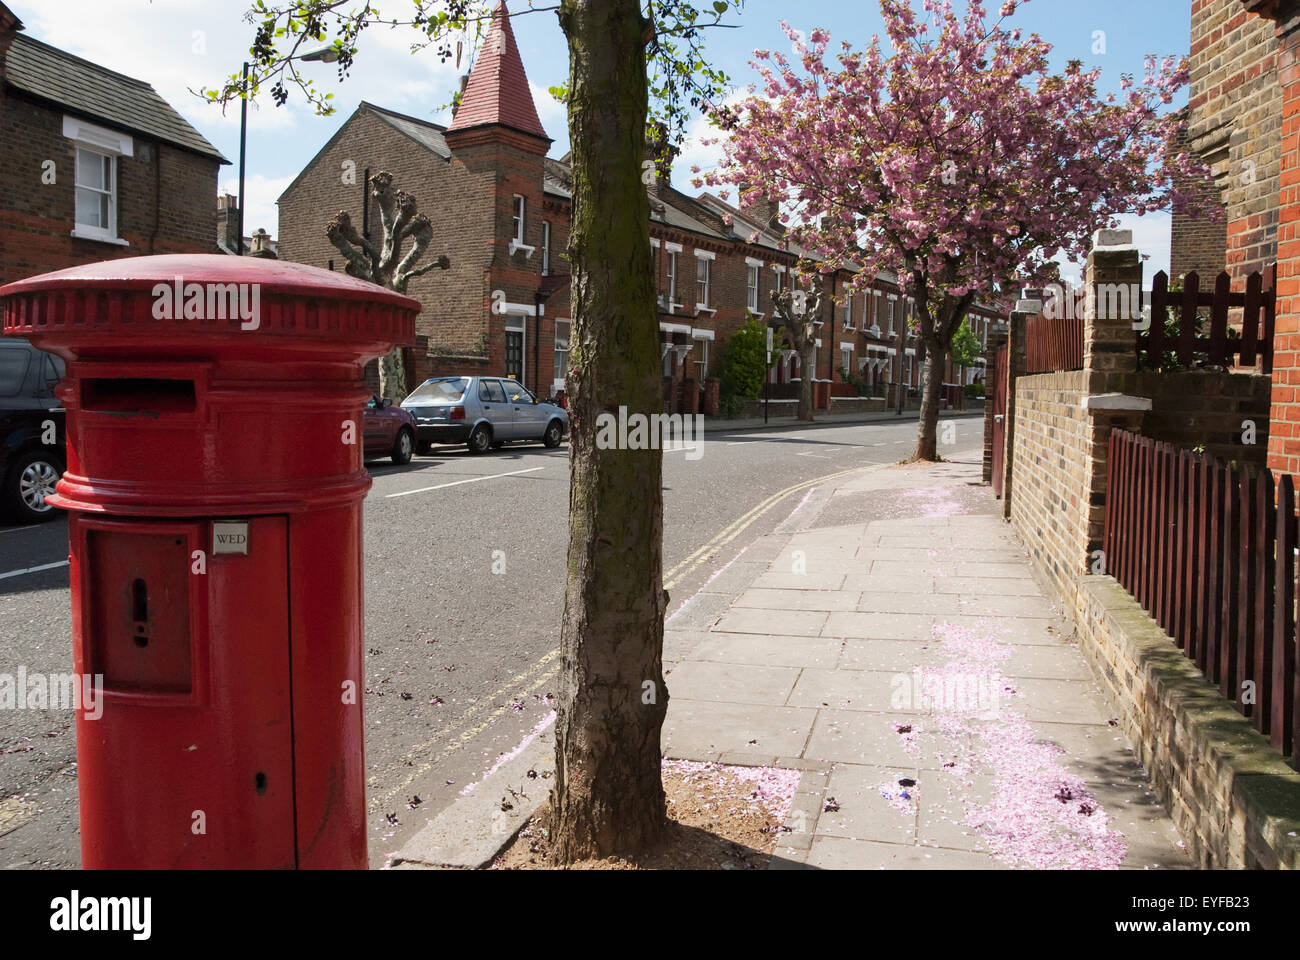 Cherry Blossom Tree And Red Uk Postal Box In North West London, England, Uk - Stock Image